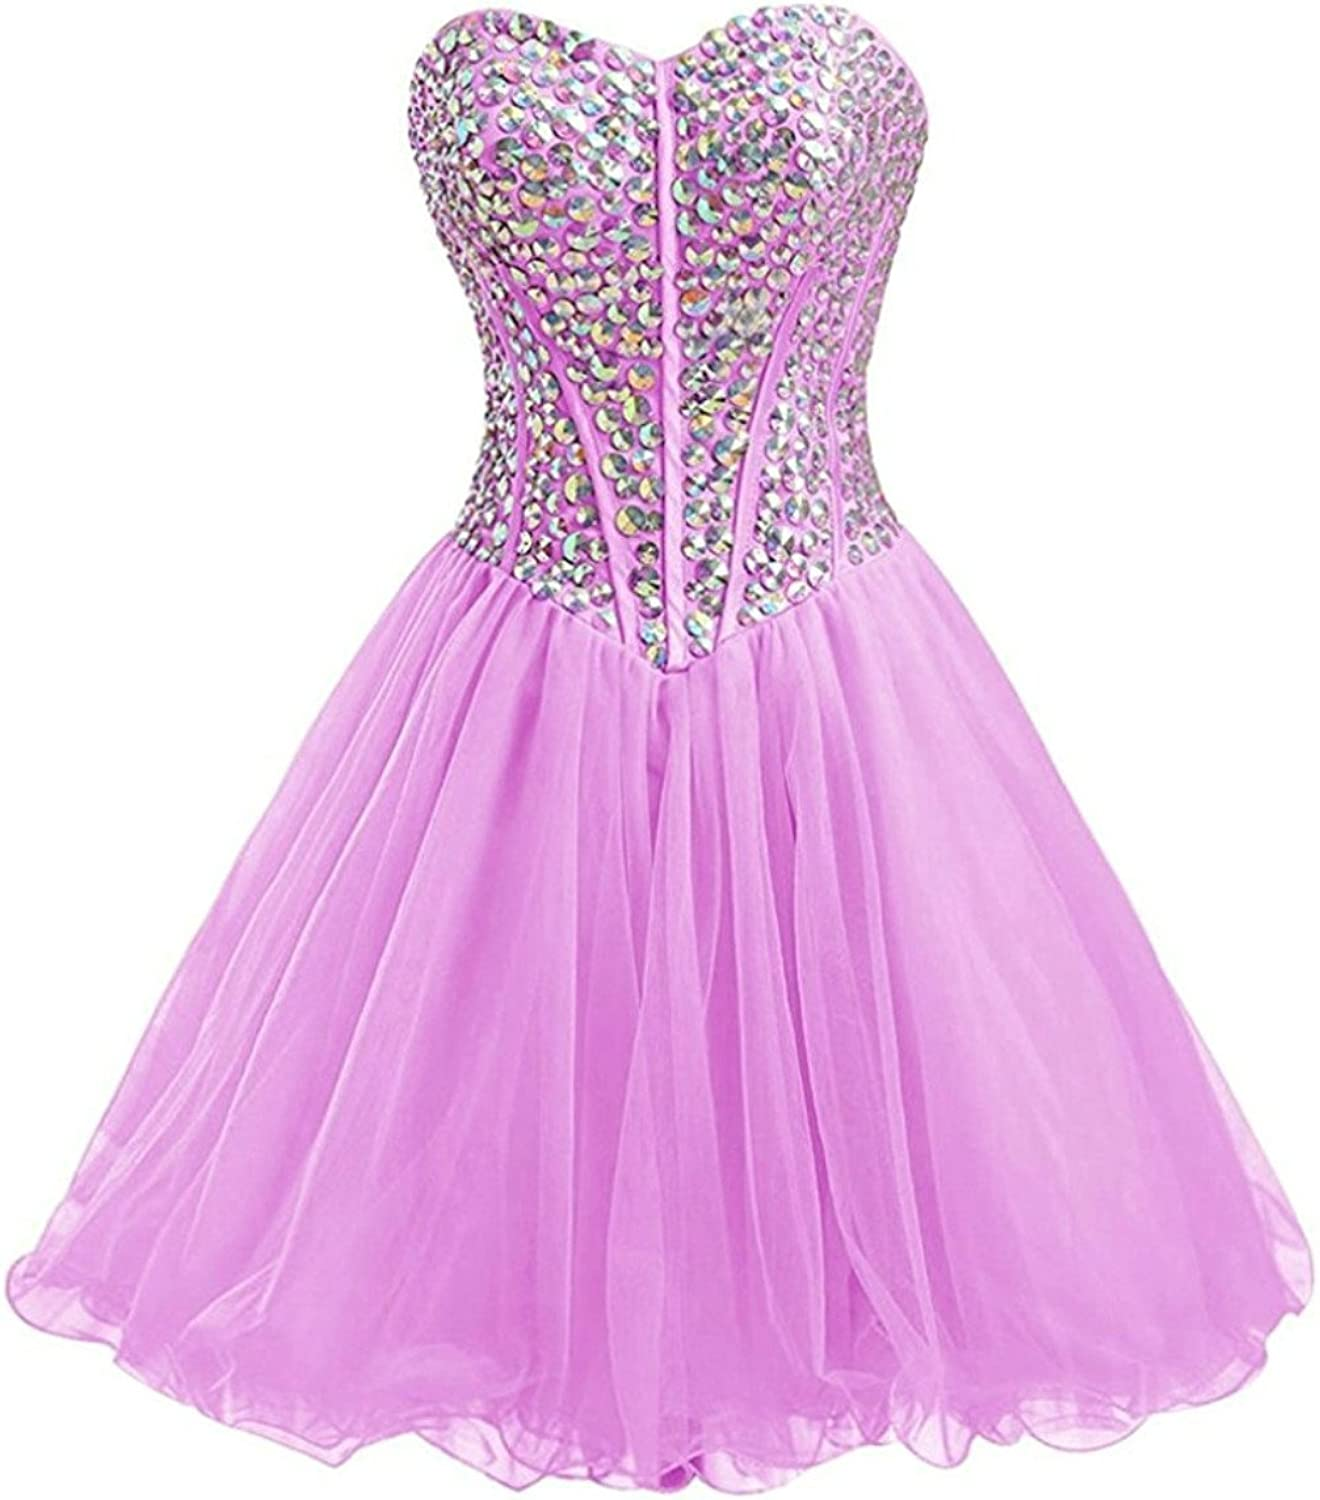 Vantexi Women's Sweetheart Tulle Homecoming Dress Short Party Prom Gown